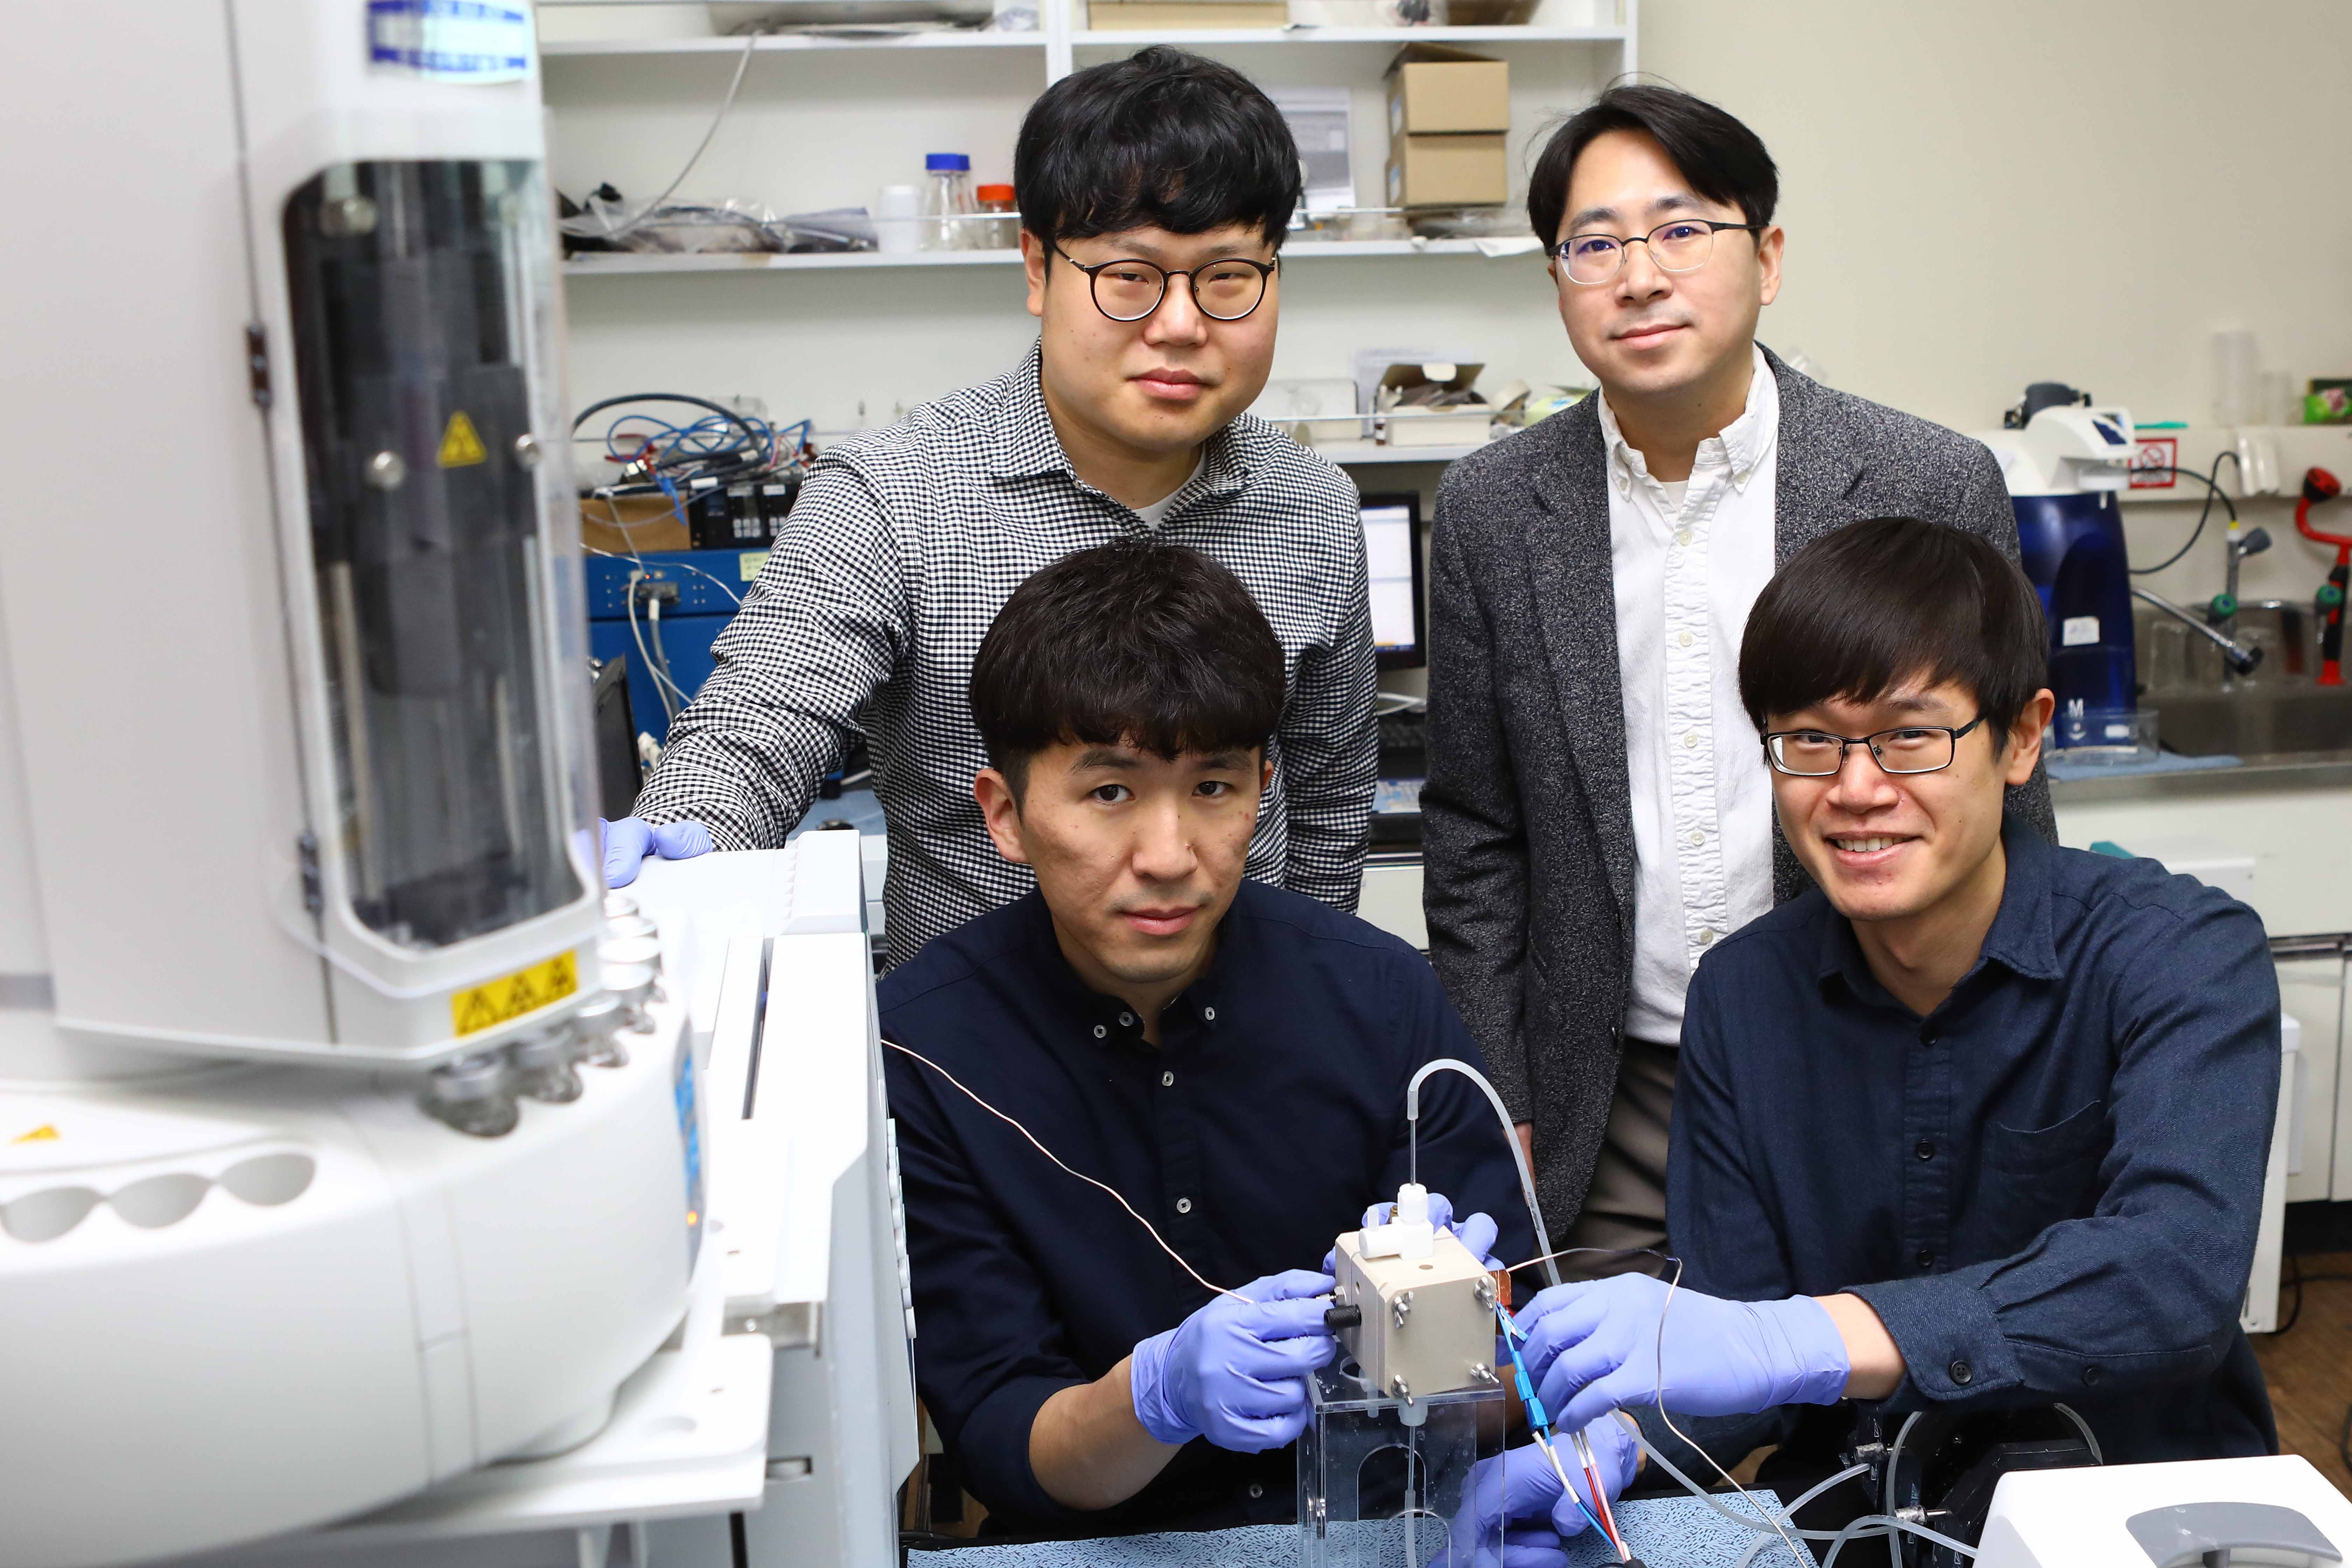 (Clockwise from back left) PhD Candidate Hakhyeon Song, Professor Jihun Oh, Dr. Ying Chuan Tan, and M.S. Candidate Kelvin Berm Lee